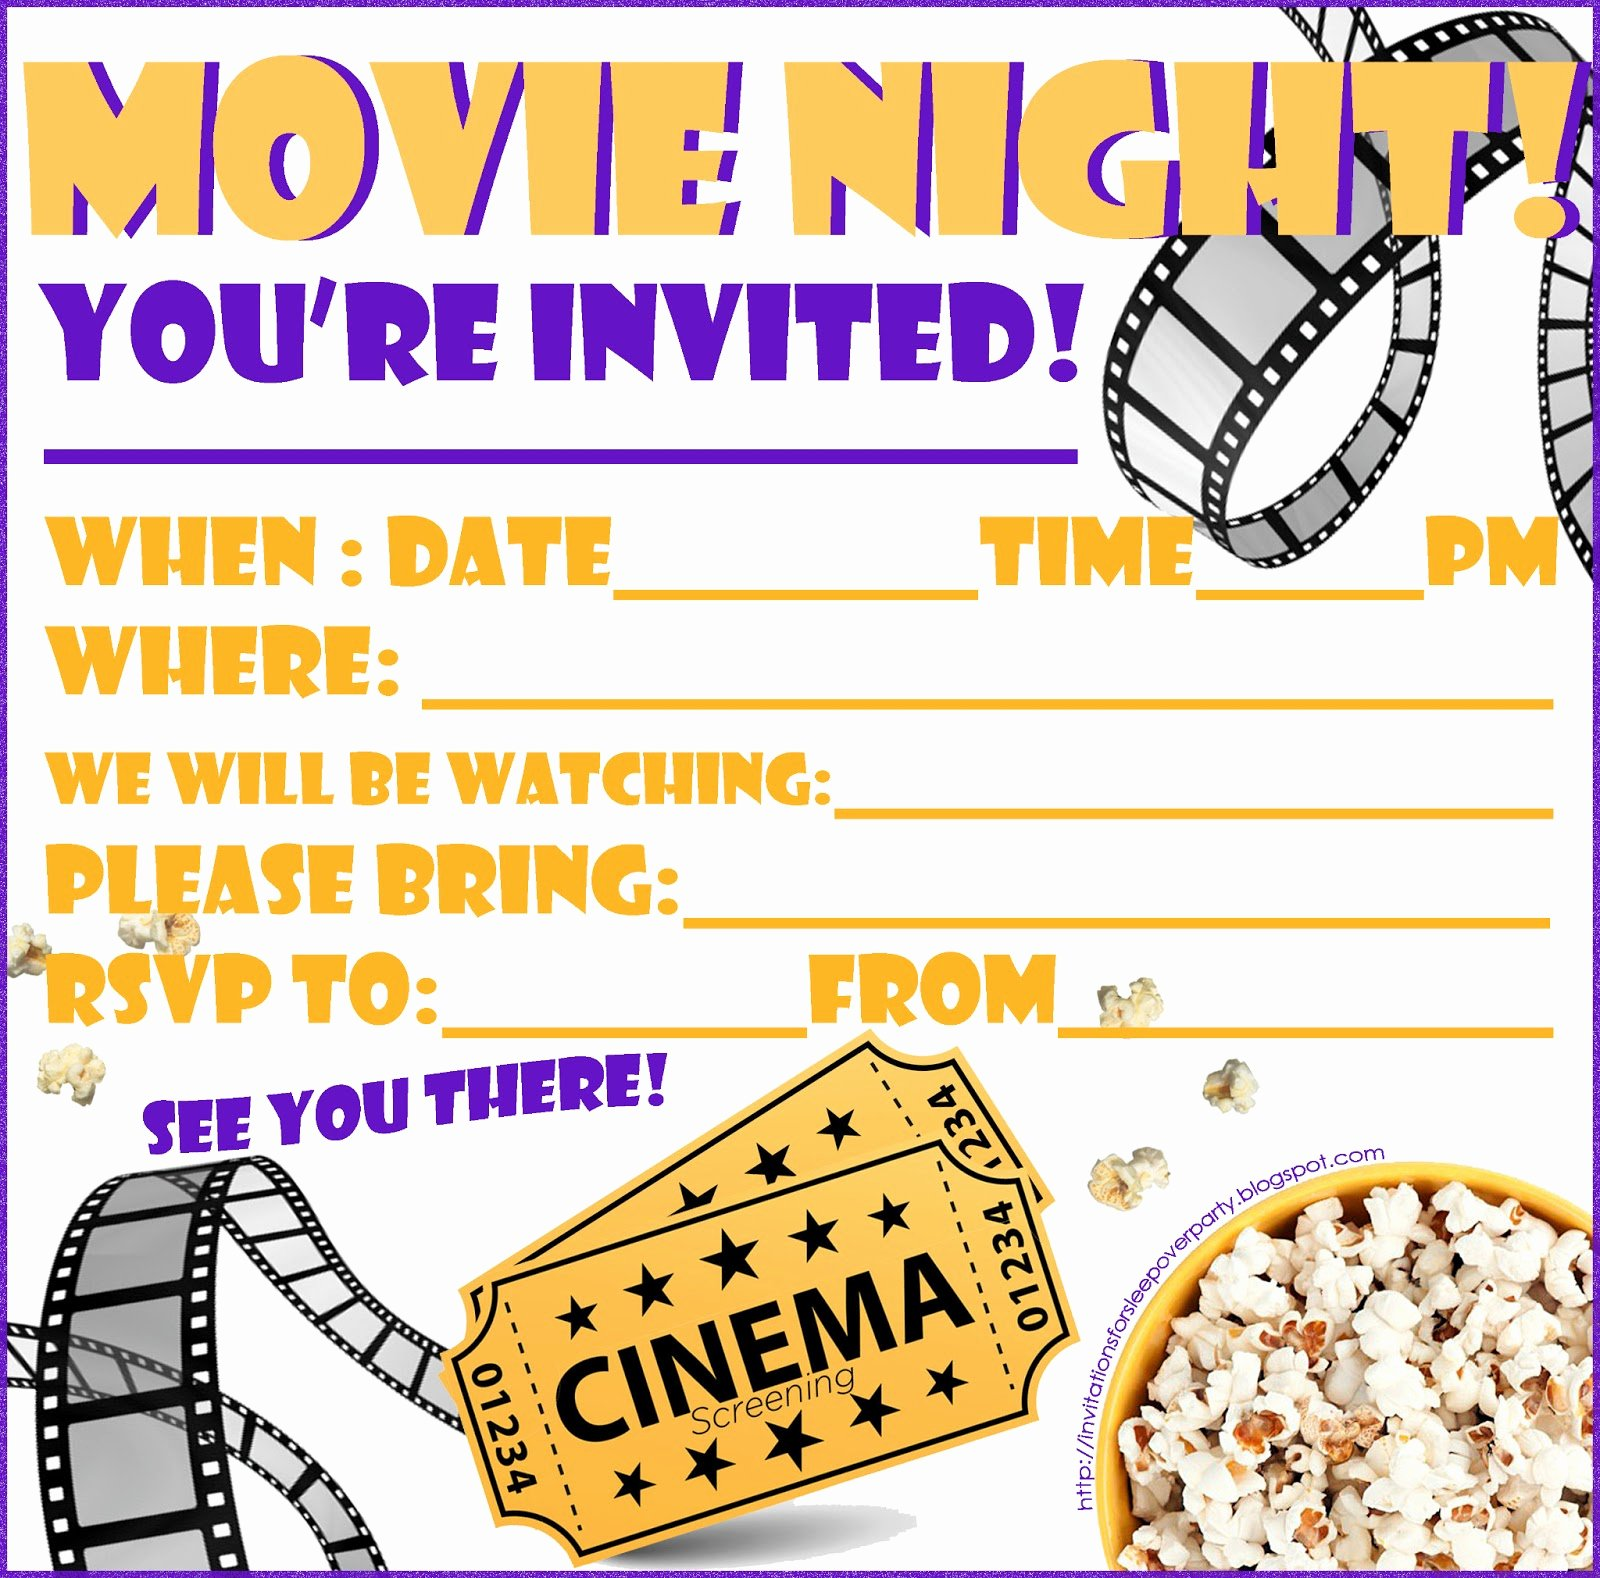 Movie Night Invite Template Inspirational Invitations for Sleepover Party